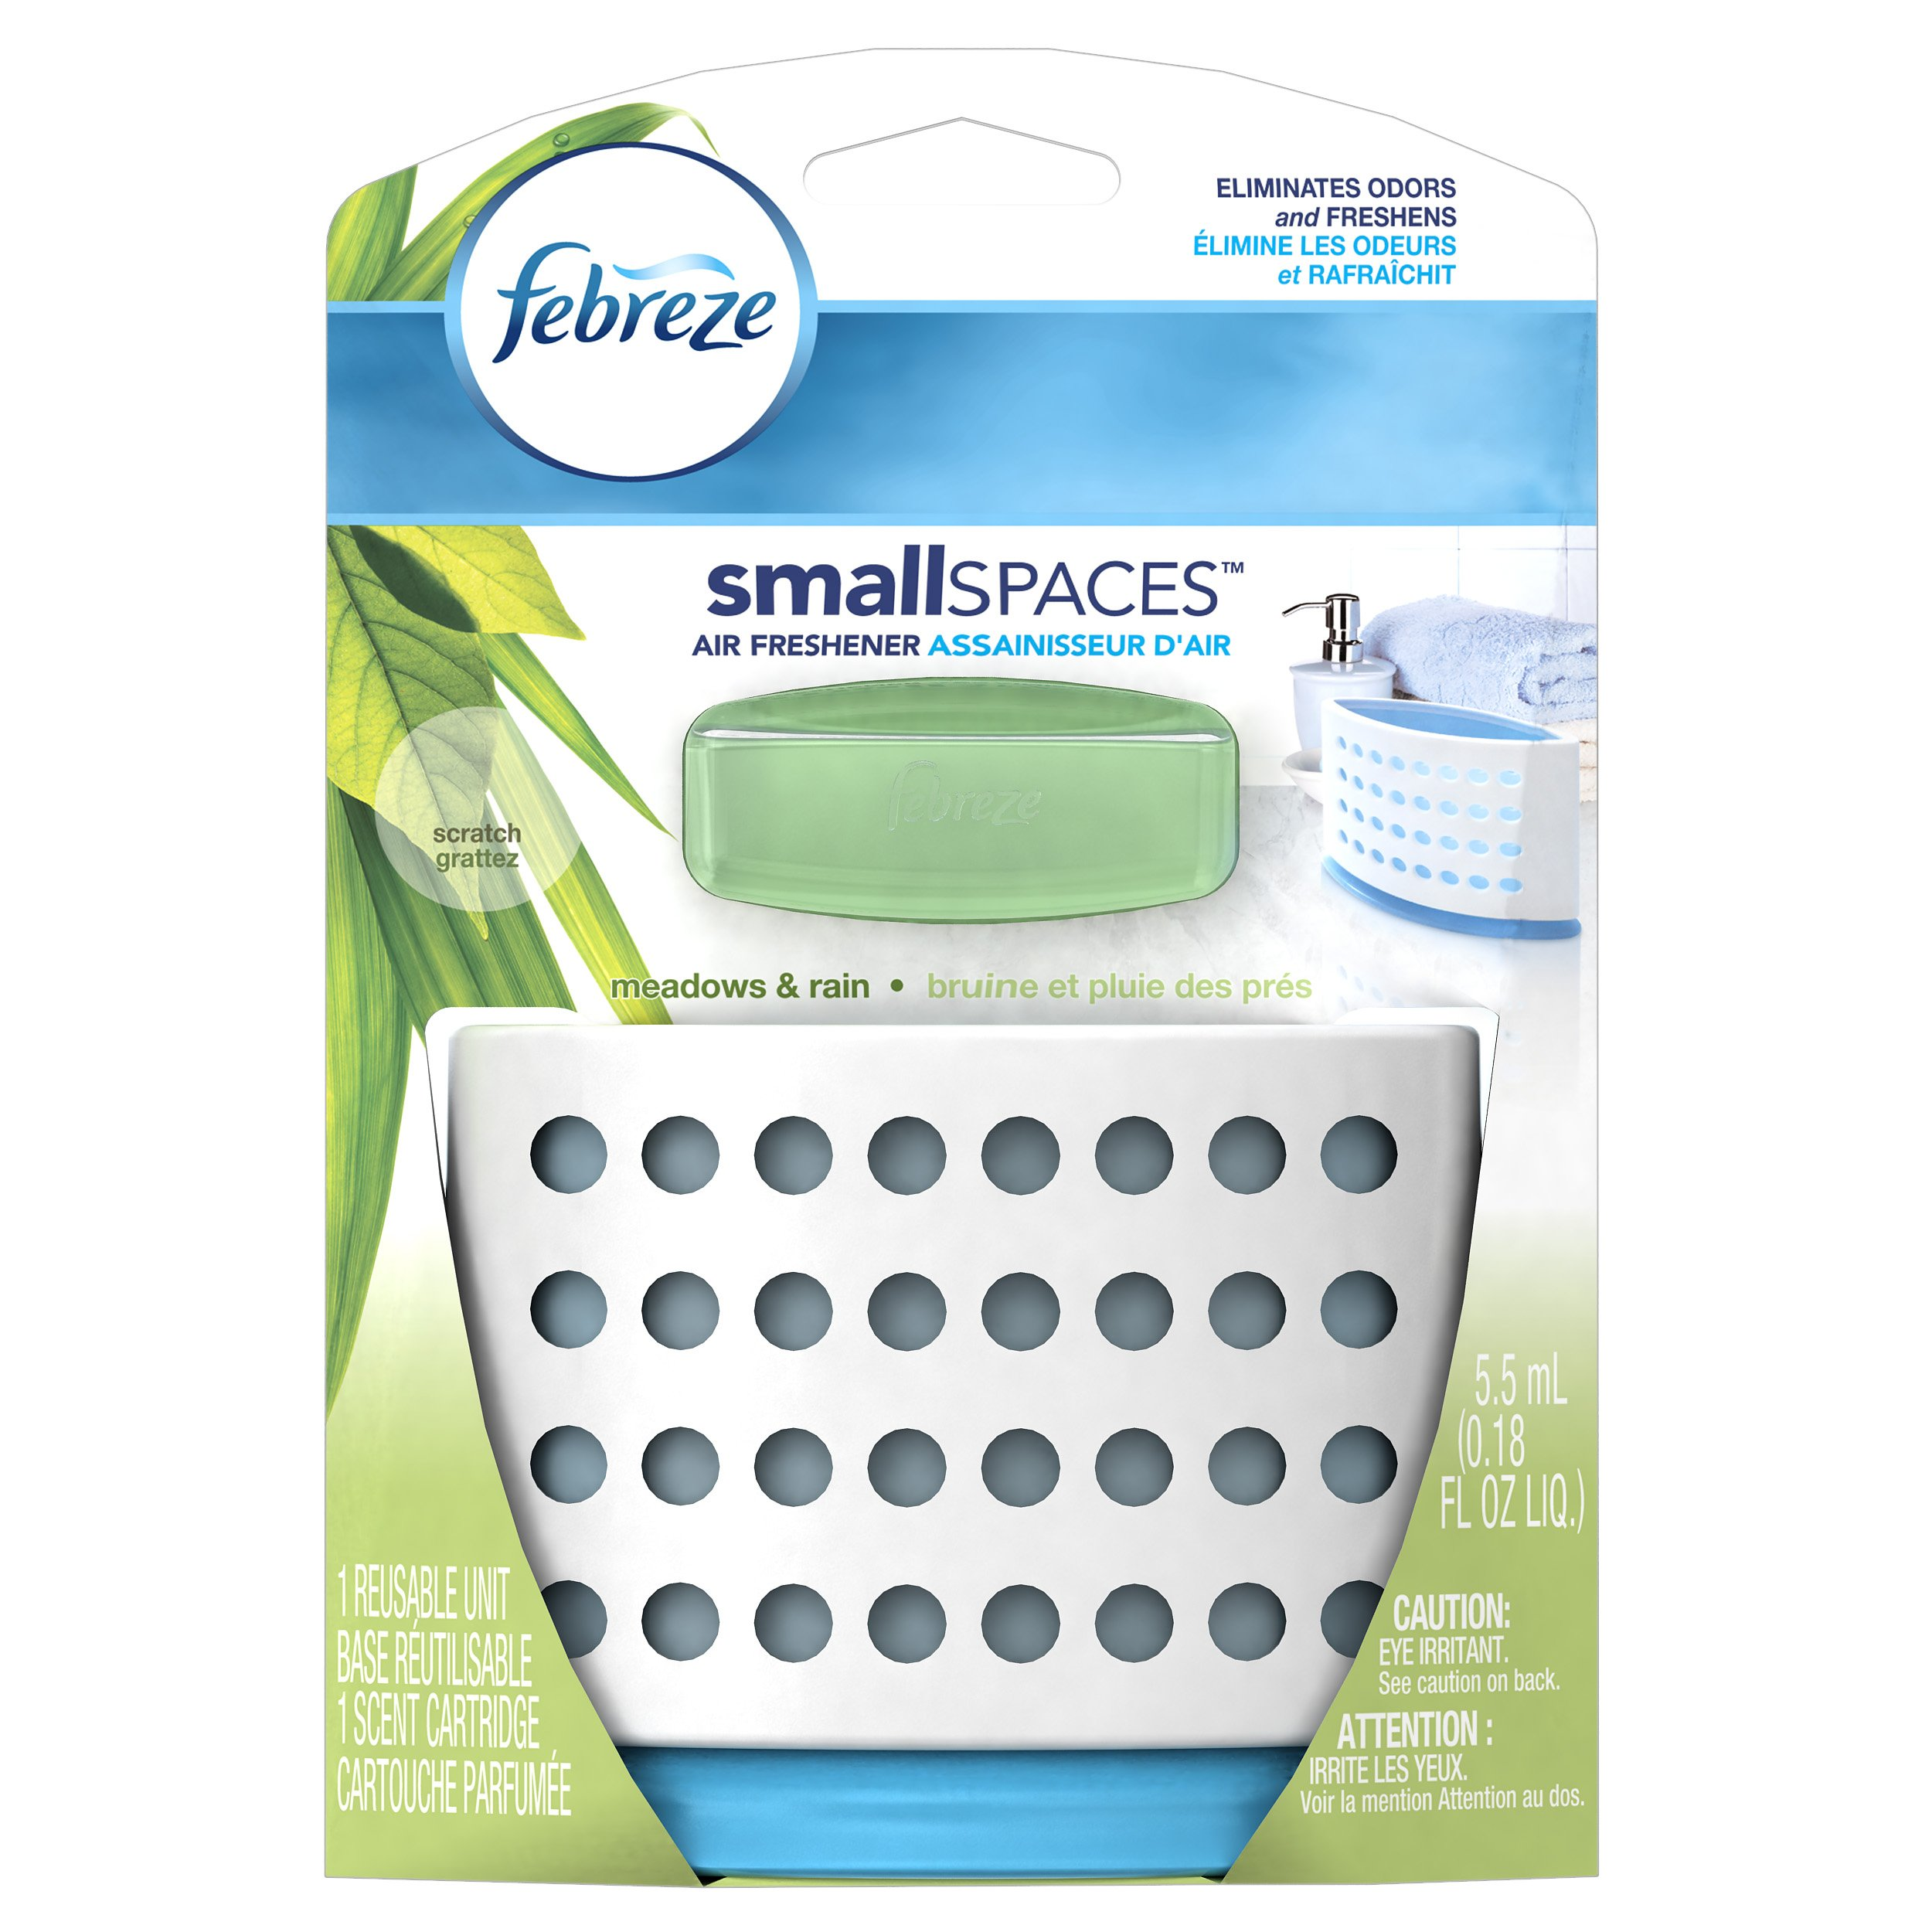 Febreze SmallSpaces Meadows and Rain Starter Kit Air Freshener (1 Count, 5.5 mL)(Pack of 8)